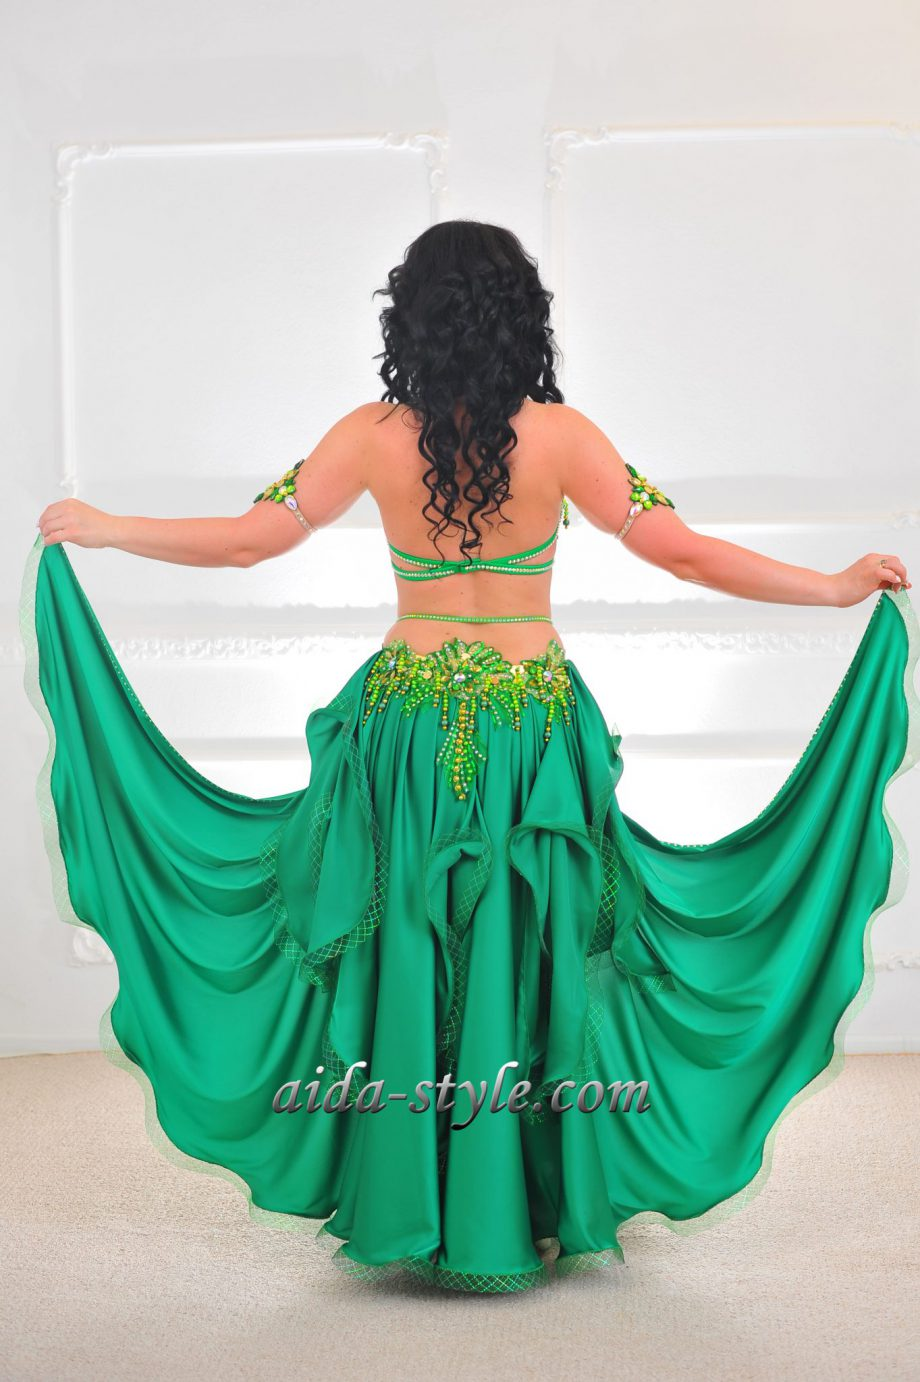 professional belly dancer costume